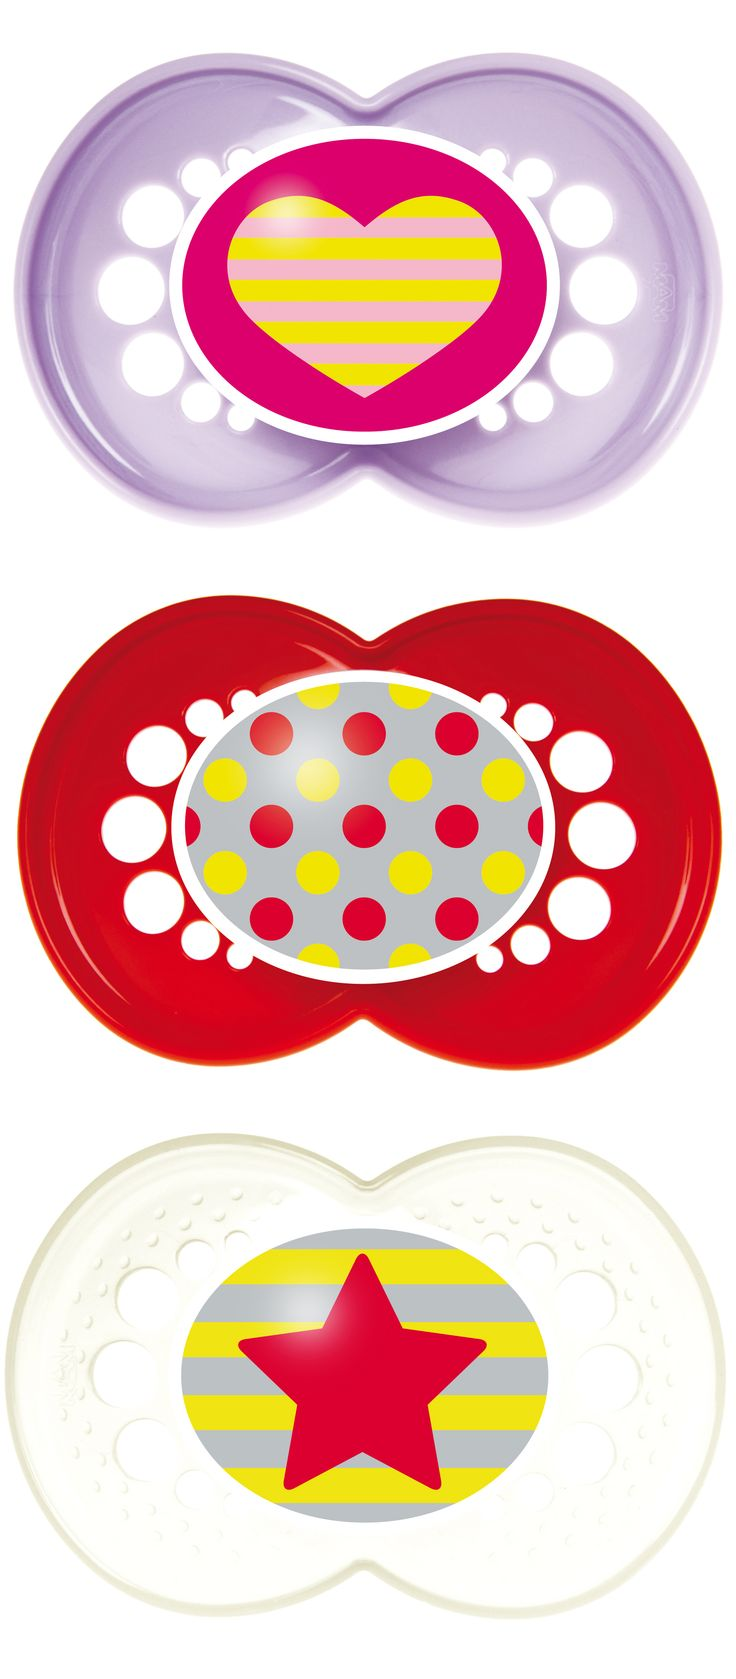 MAM Trends collection, 6+ months #mambaby #pacifiers